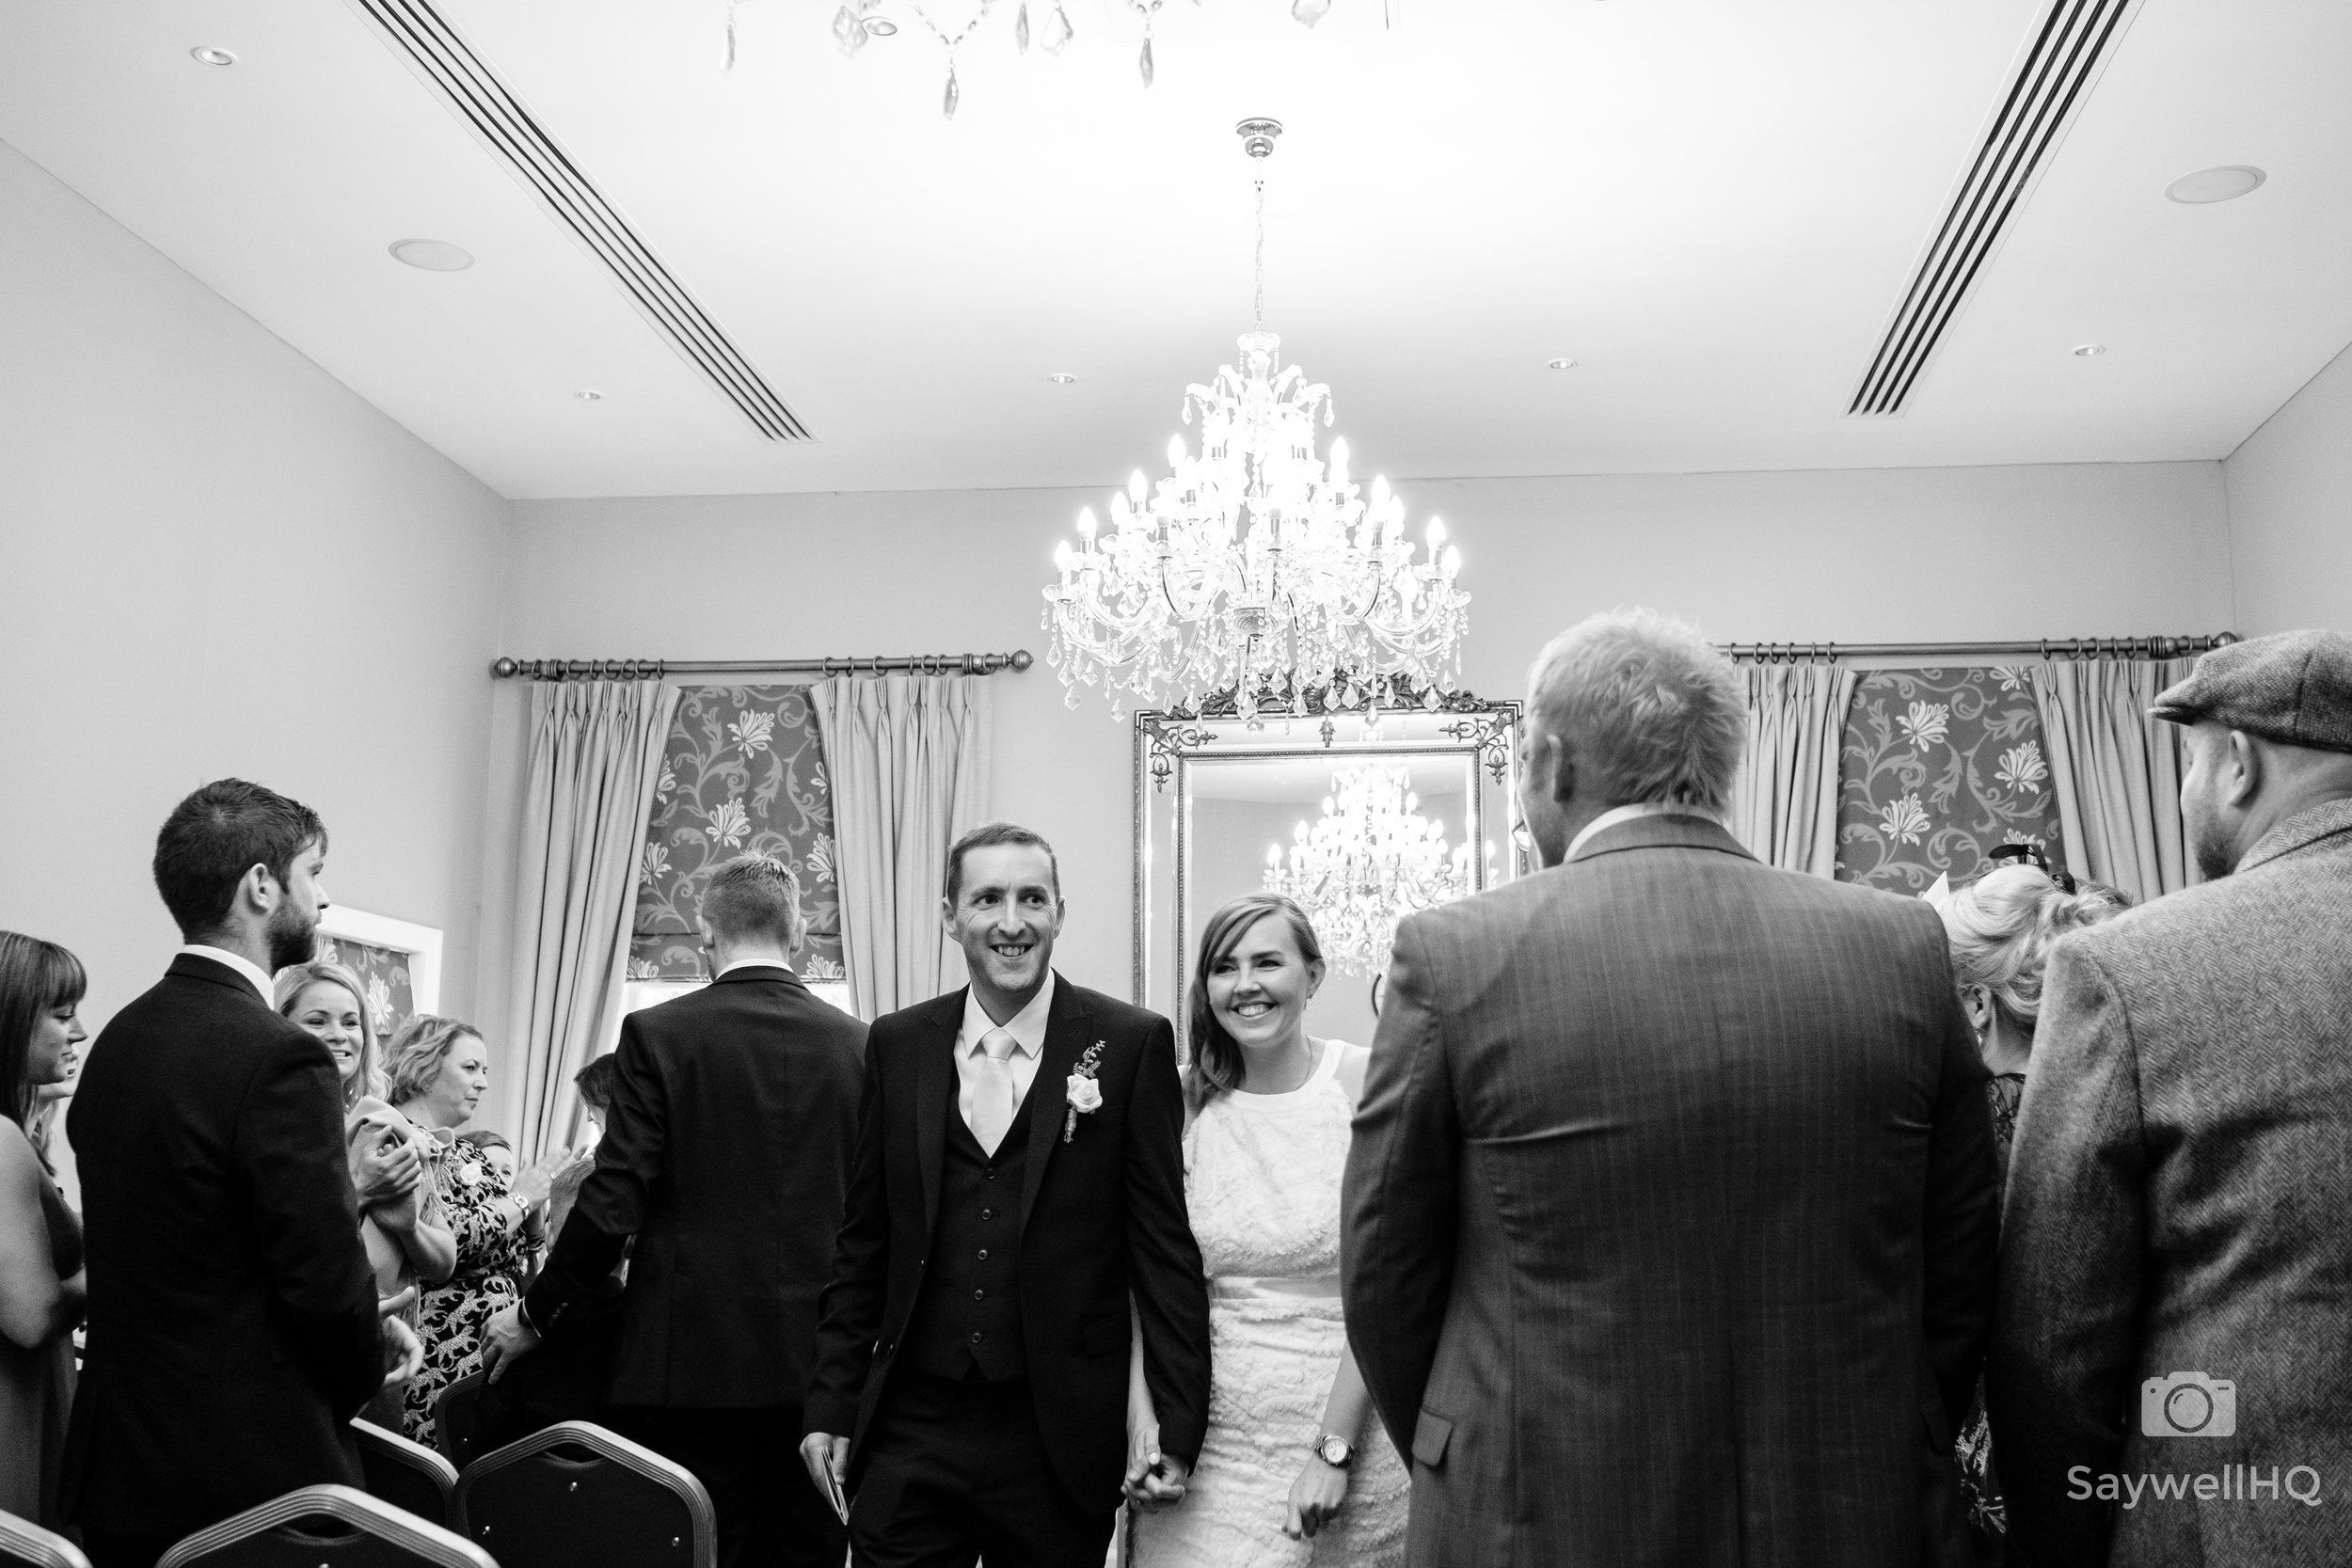 Wedding Photography at Bridgford Hall in West Bridgford Nottingham bride and groom walking down the aisle